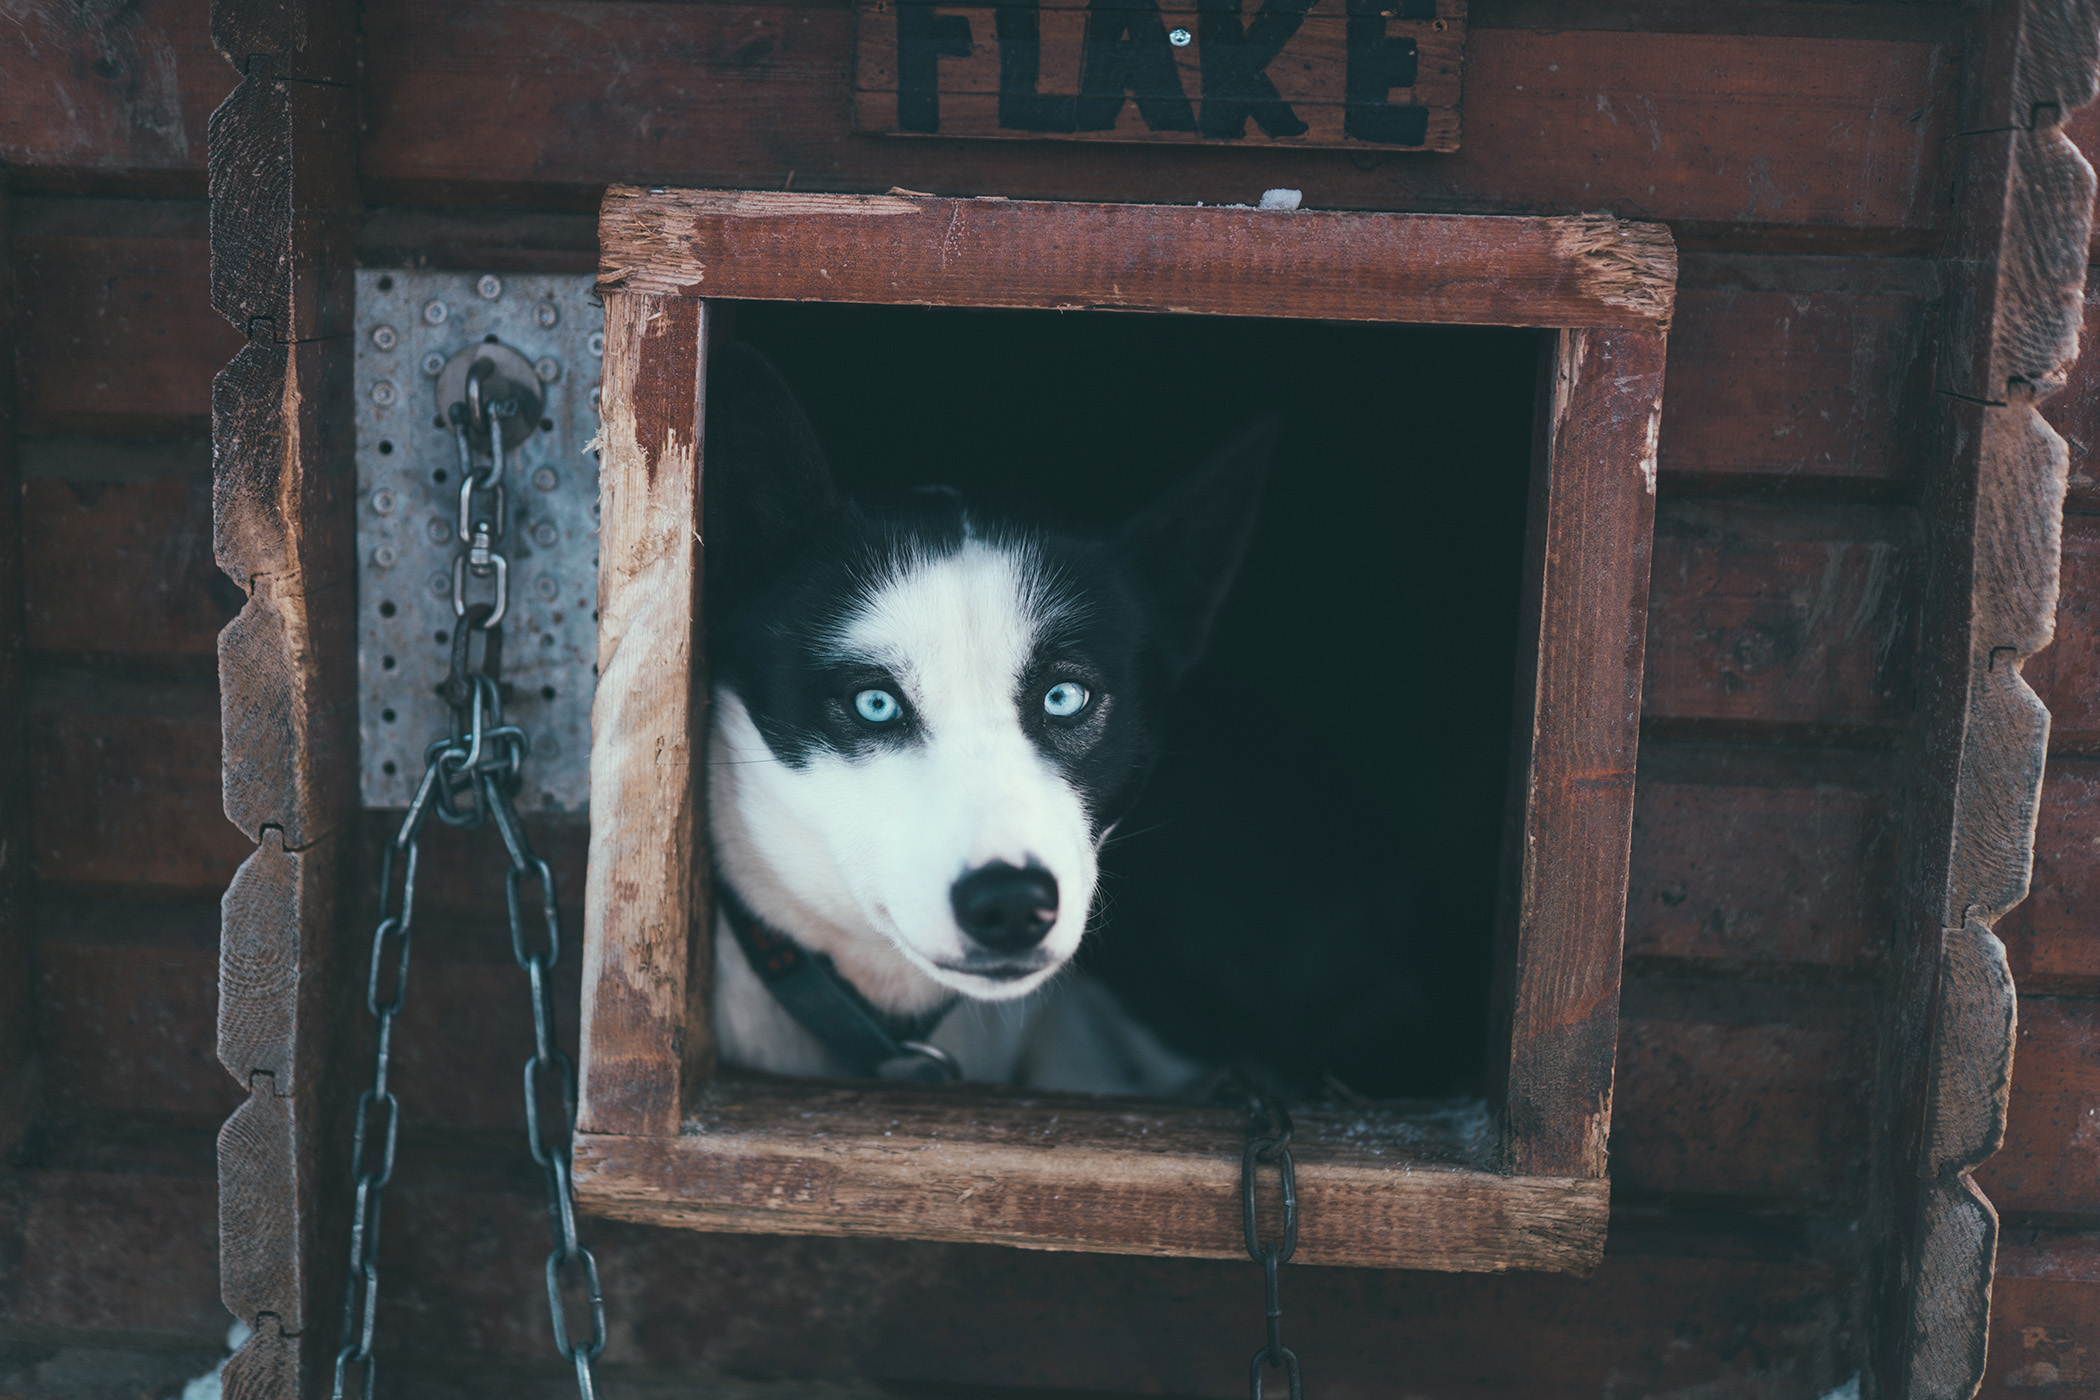 Silver, black and white alaskan husky with blue eyes looking out from dog house